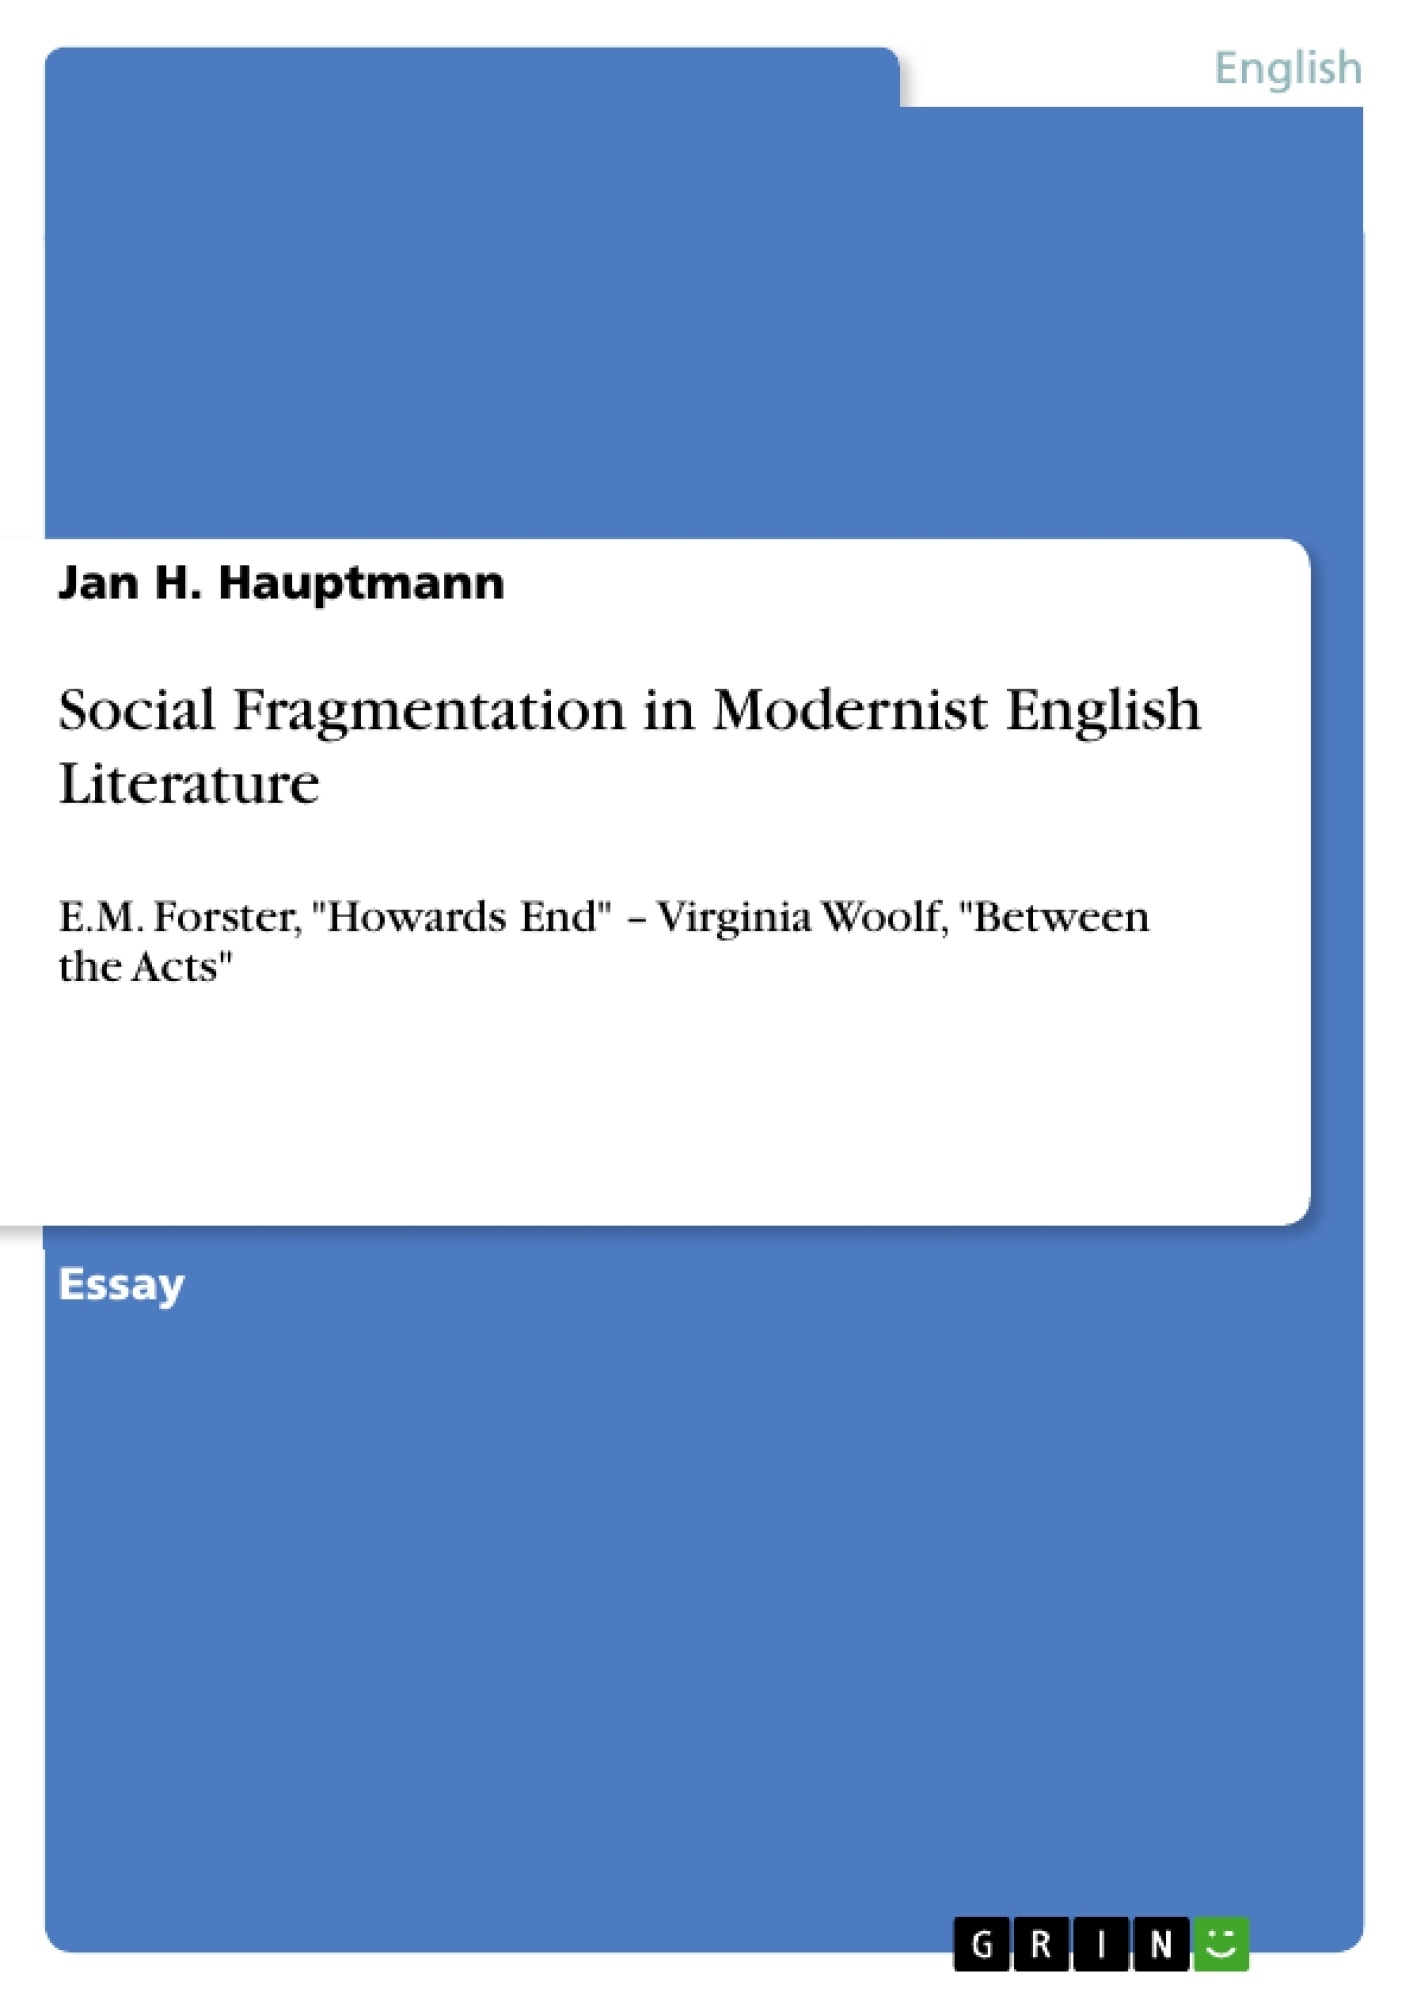 social fragmentation in modernist english literature publish  upload your own papers earn money and win an iphone x